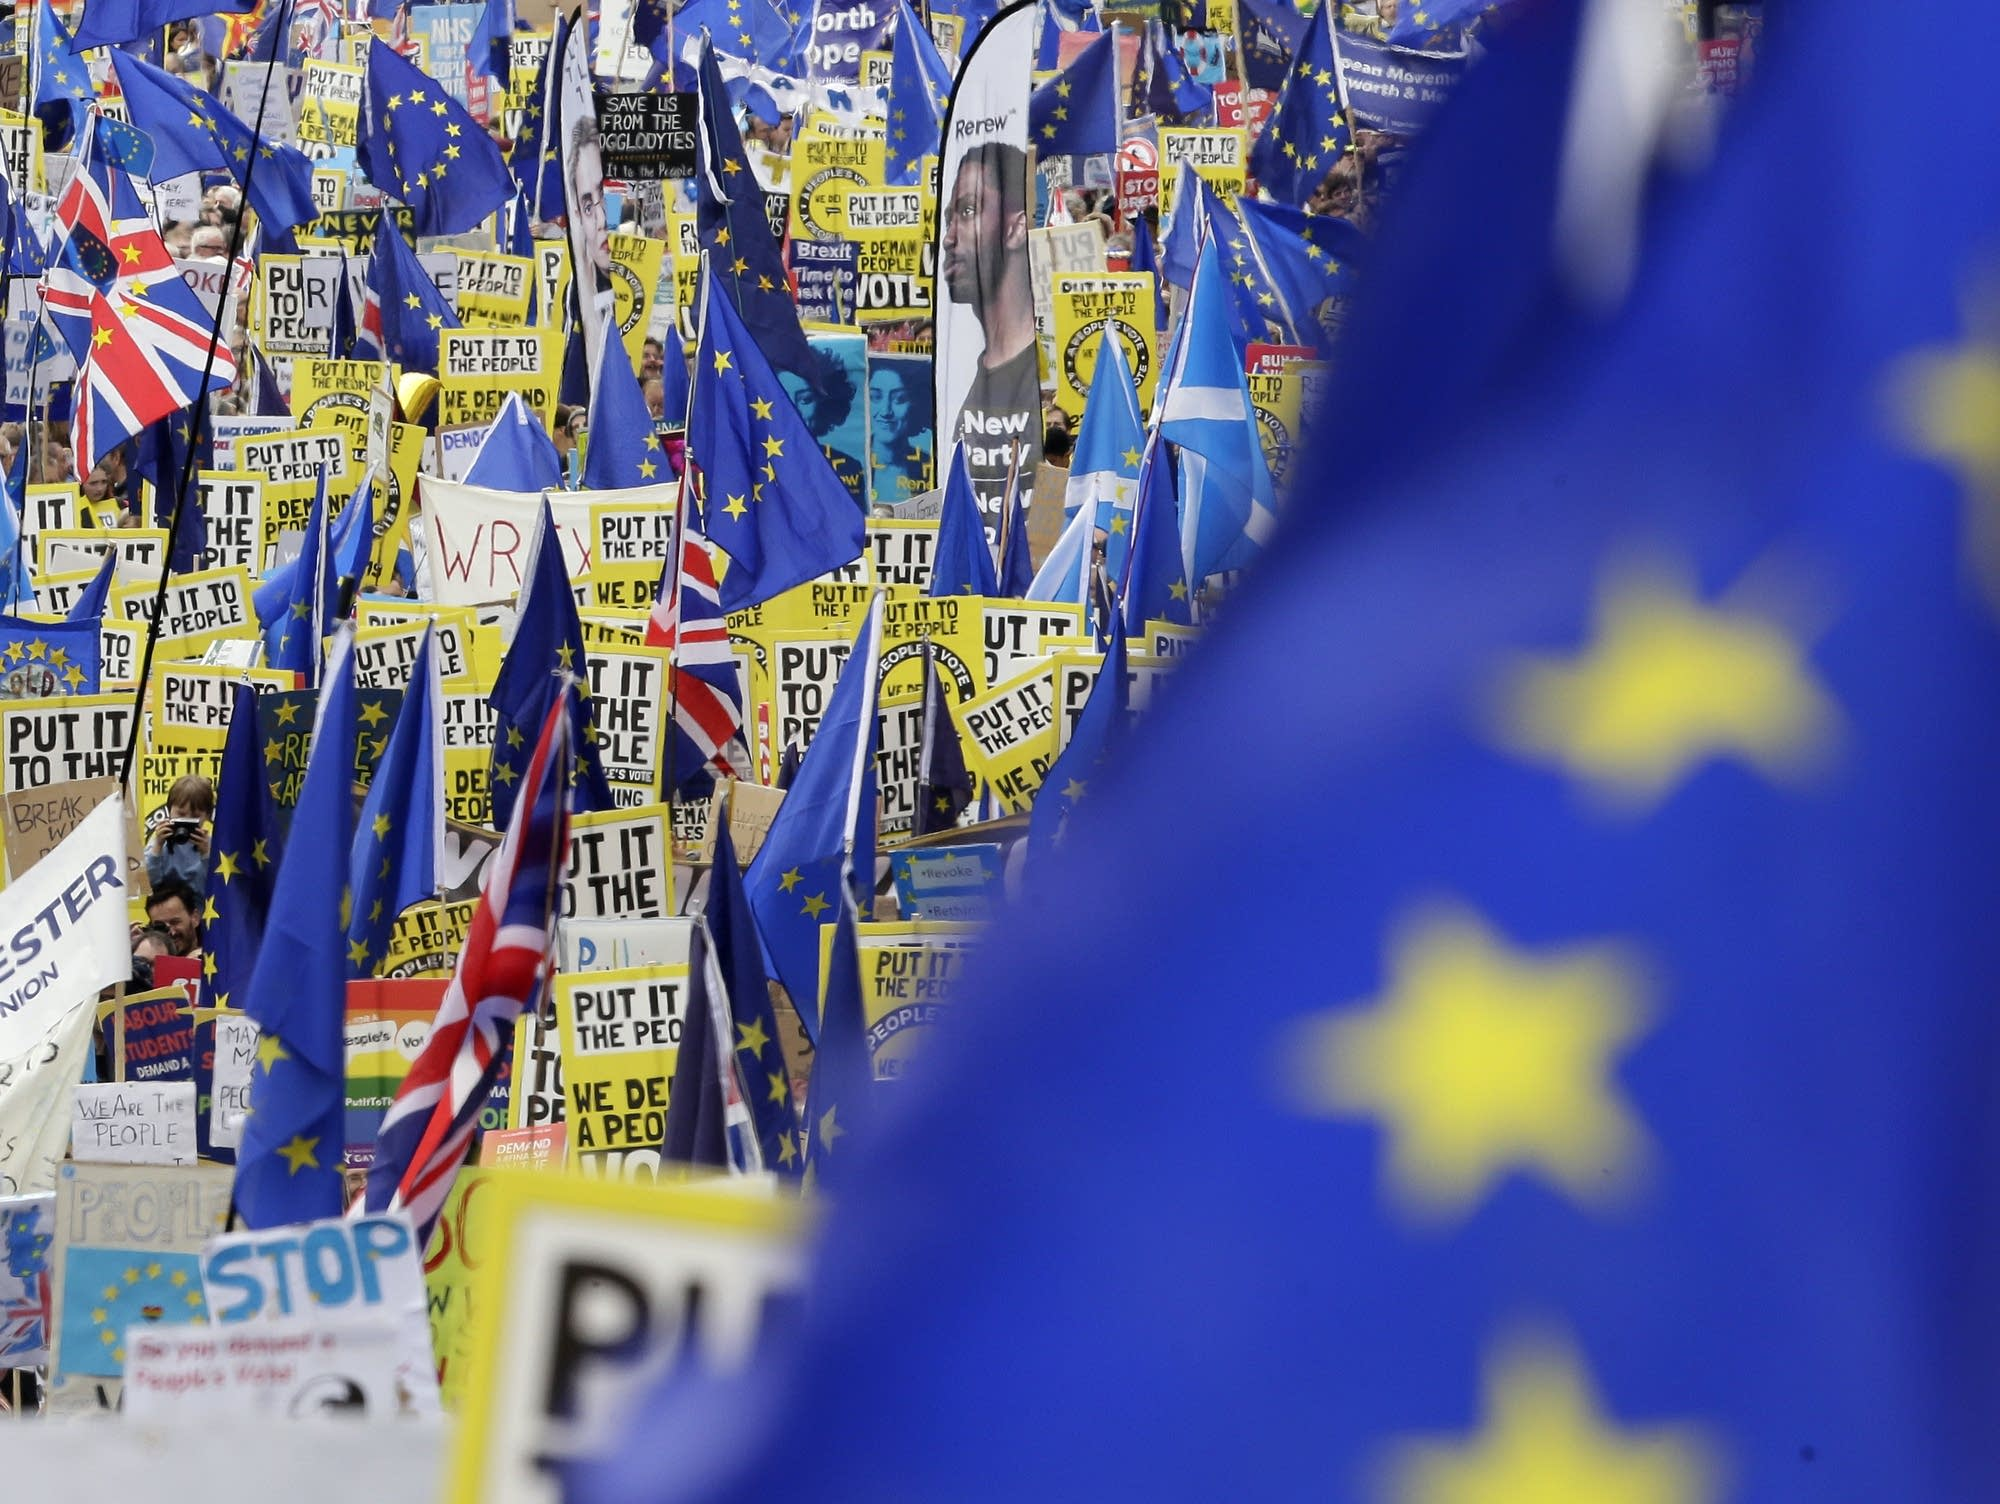 Demonstrators carry posters and flags during an anti-Brexit march